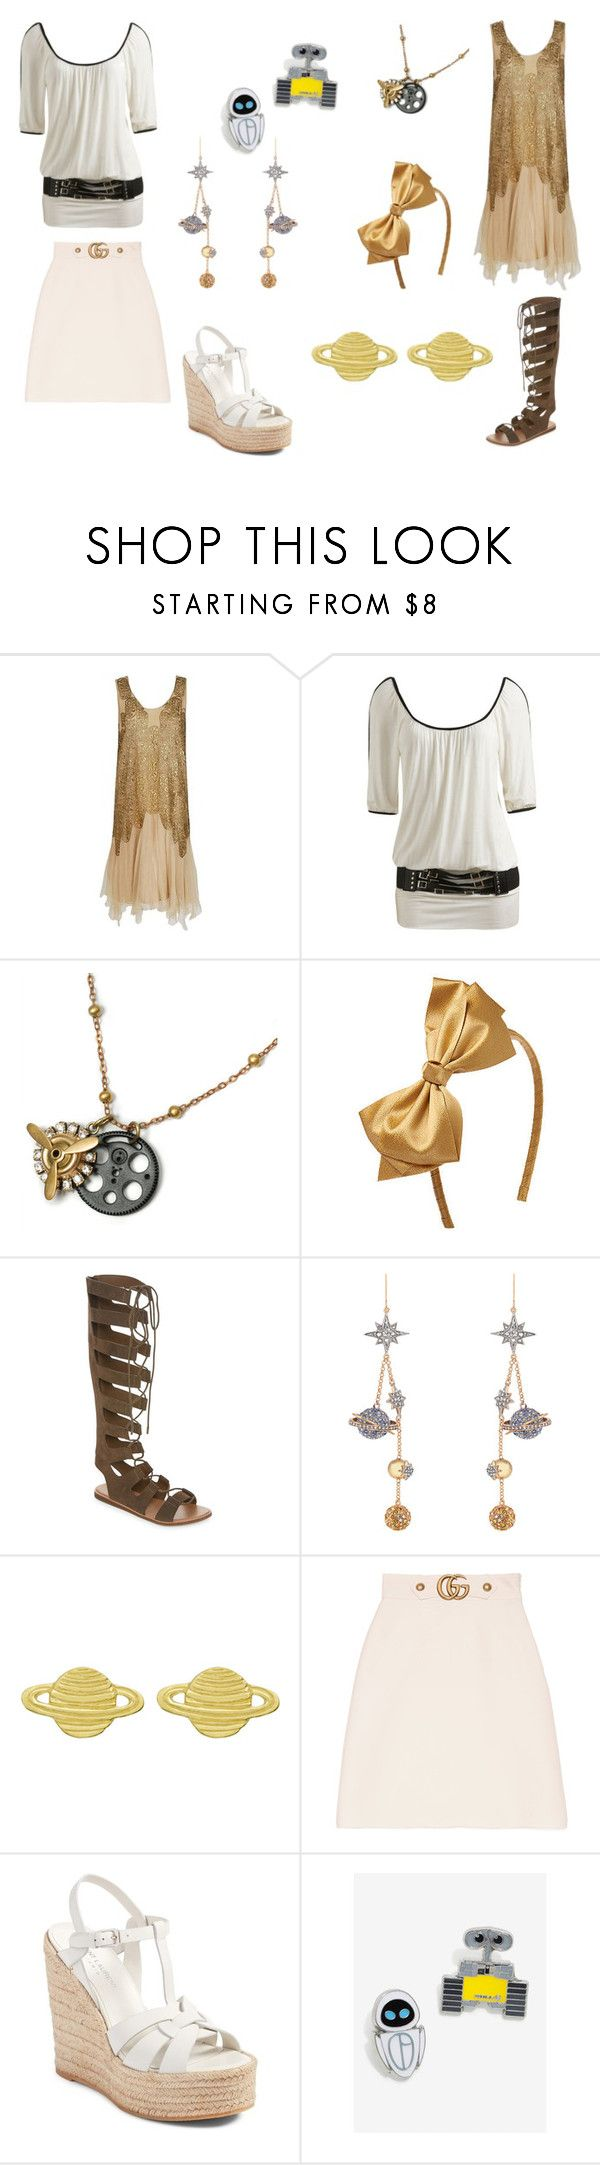 """""""Best Friends Wall-E And Eve"""" by meladyfrost ❤ liked on Polyvore featuring Wet Seal, Sweet Romance, Bamboo, Roberto Cavalli, Zoe & Morgan, Gucci and Yves Saint Laurent"""